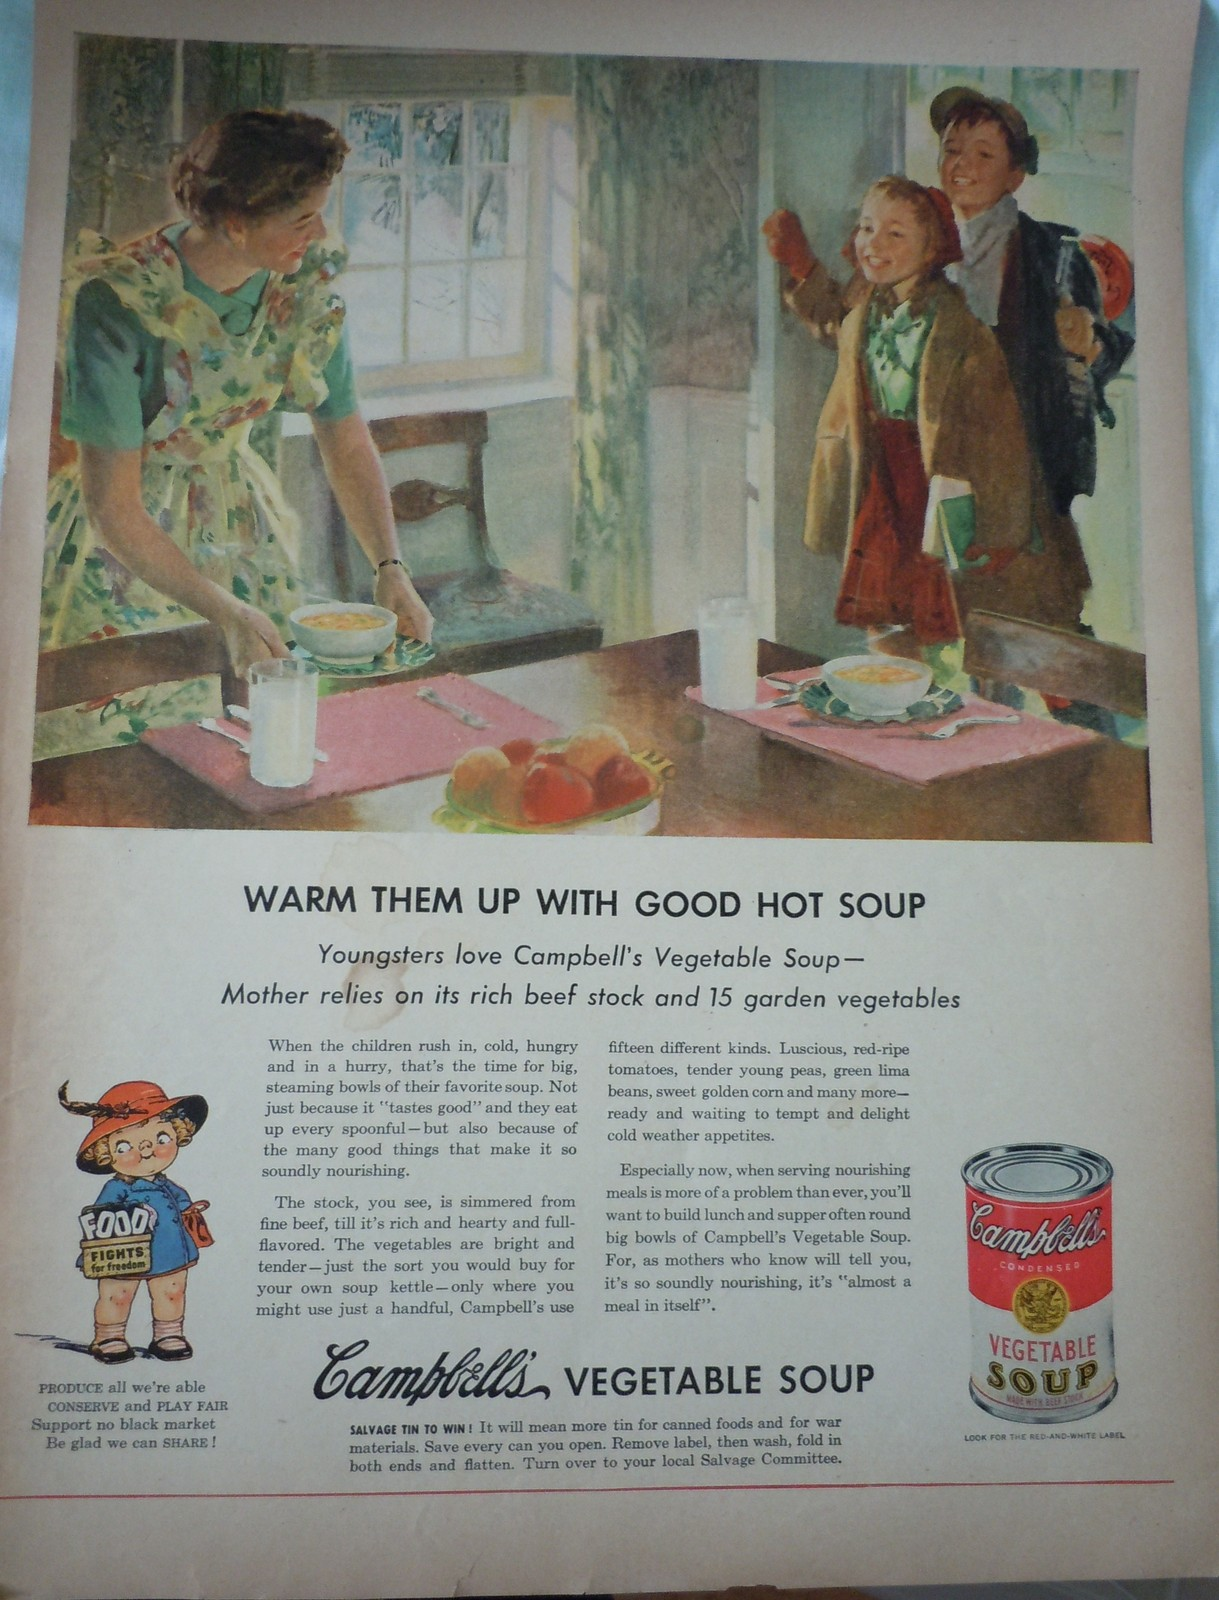 Campbell's Vegetable Soup Food Fights For Freedom WWII Advertising Print Ad Art